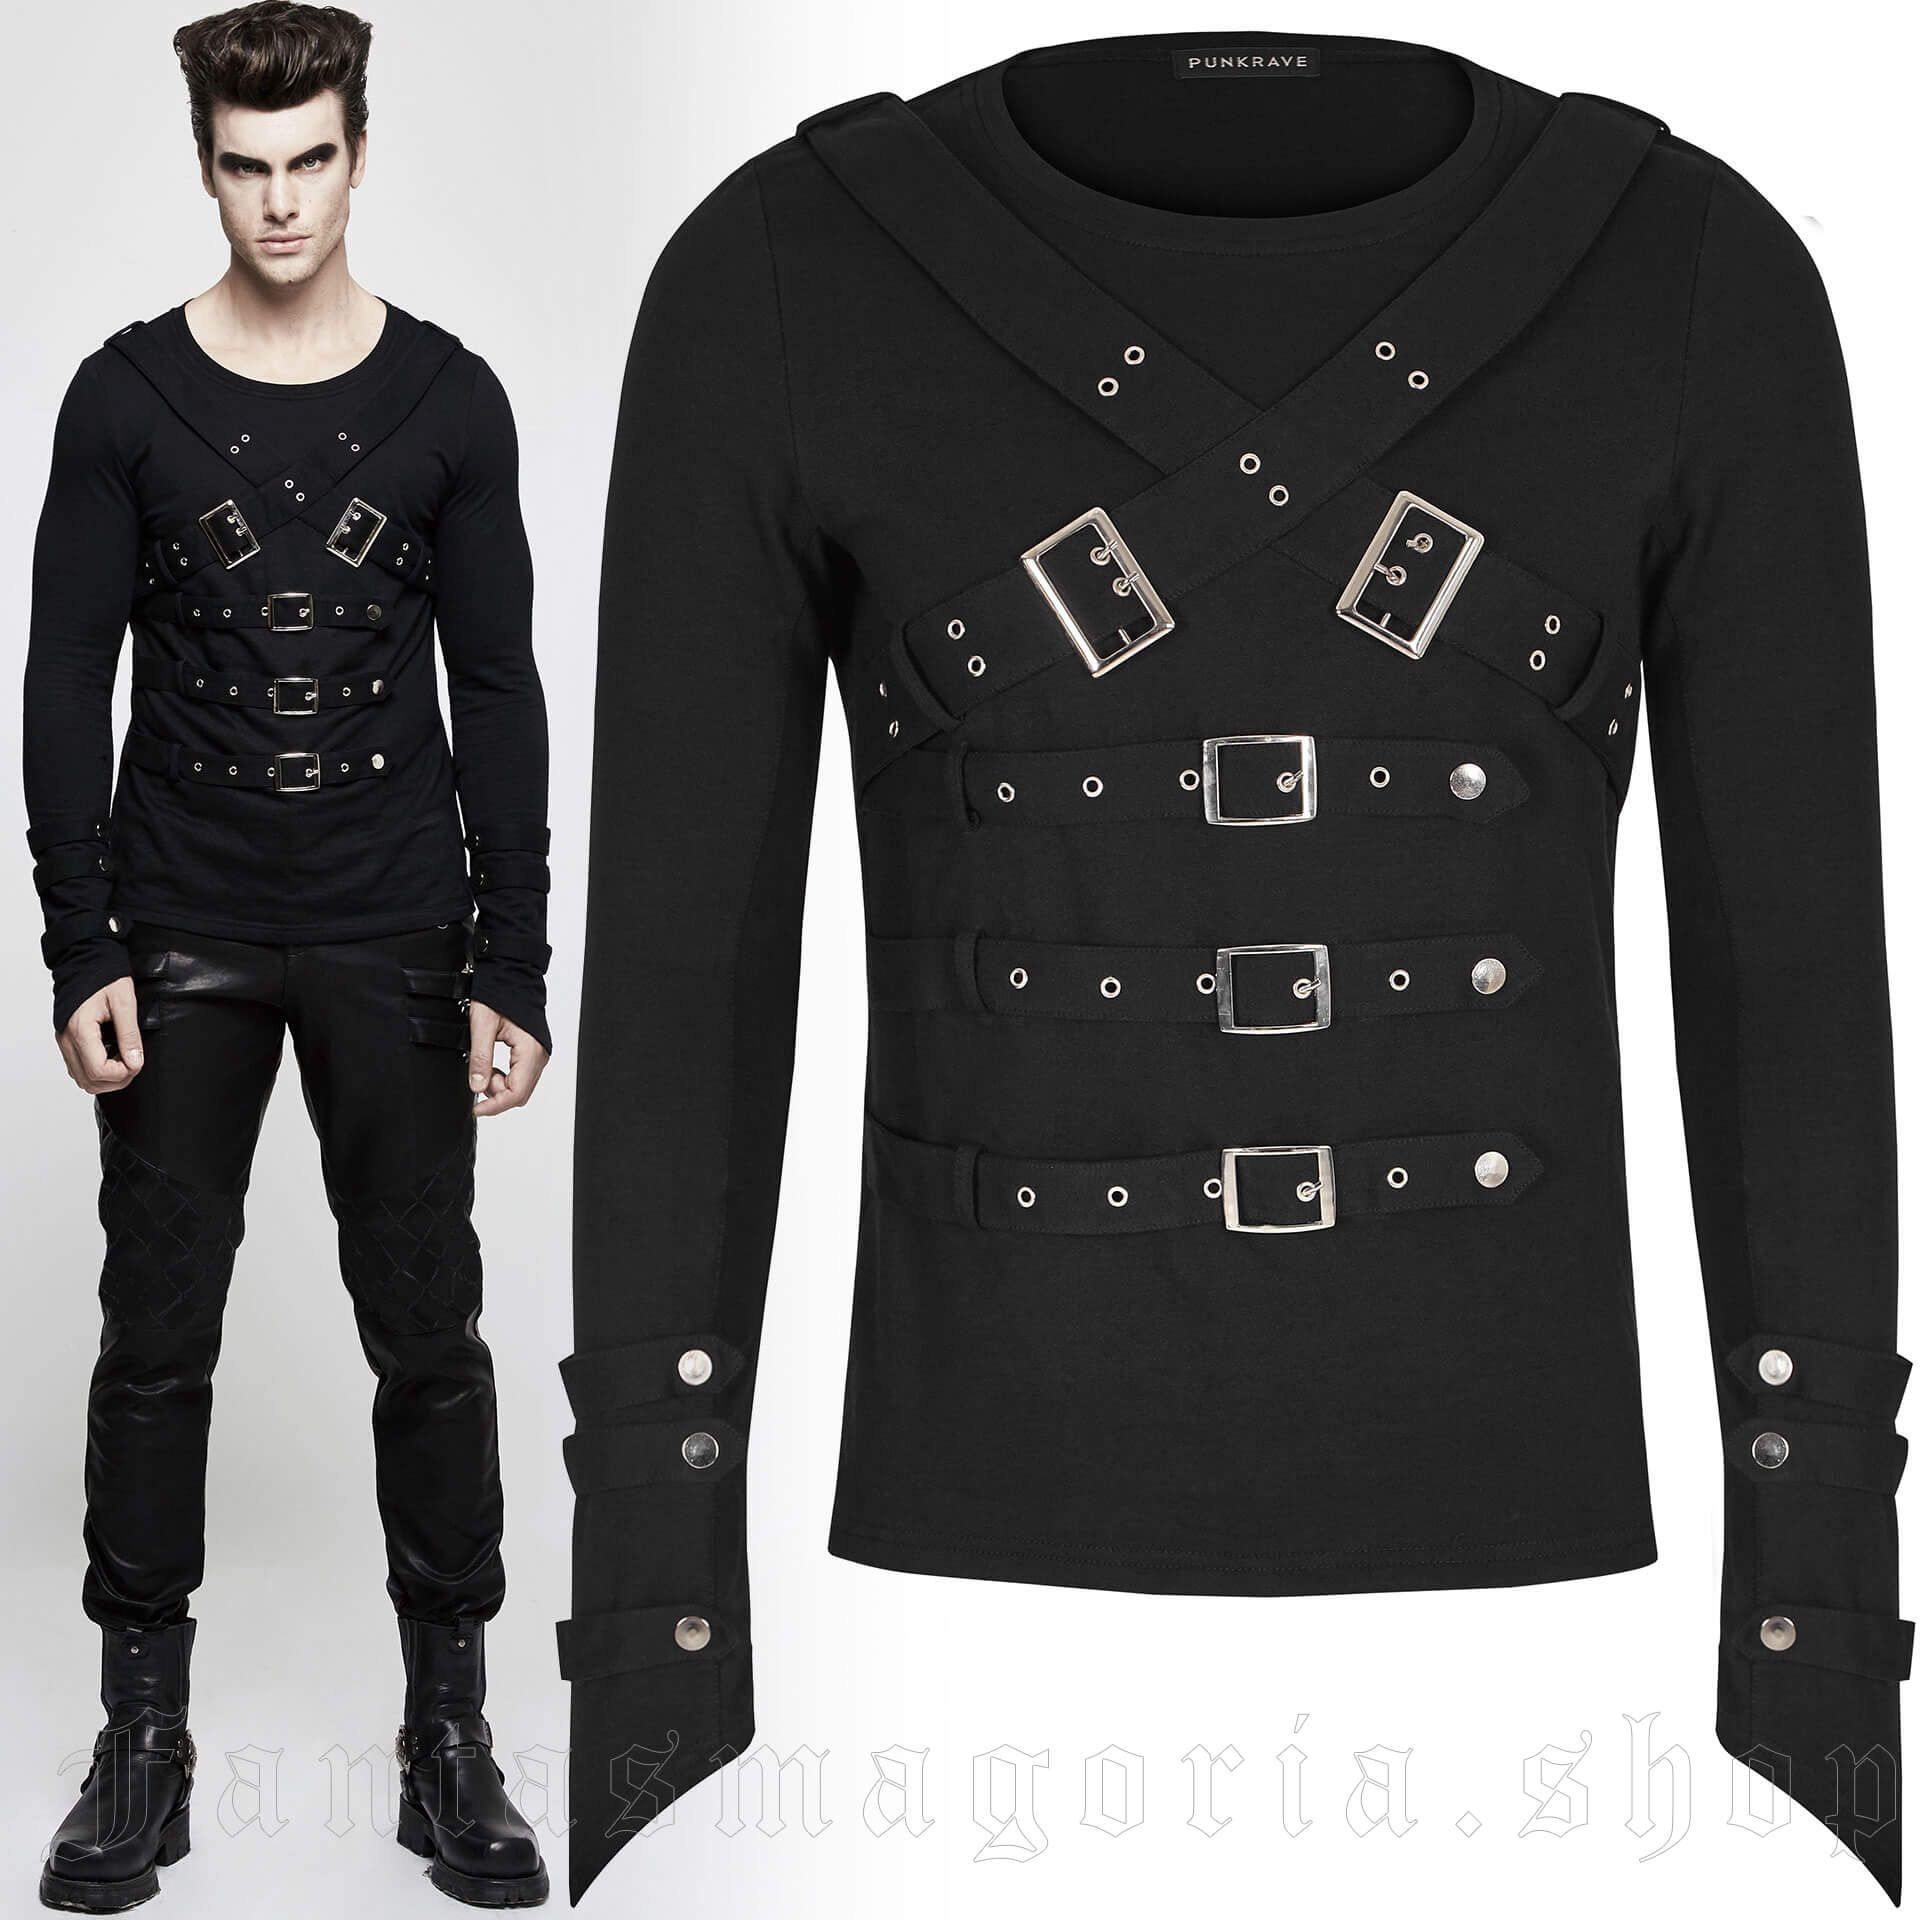 men's Bast Bondage Longlseeve Top by PUNK RAVE brand, code: T-486